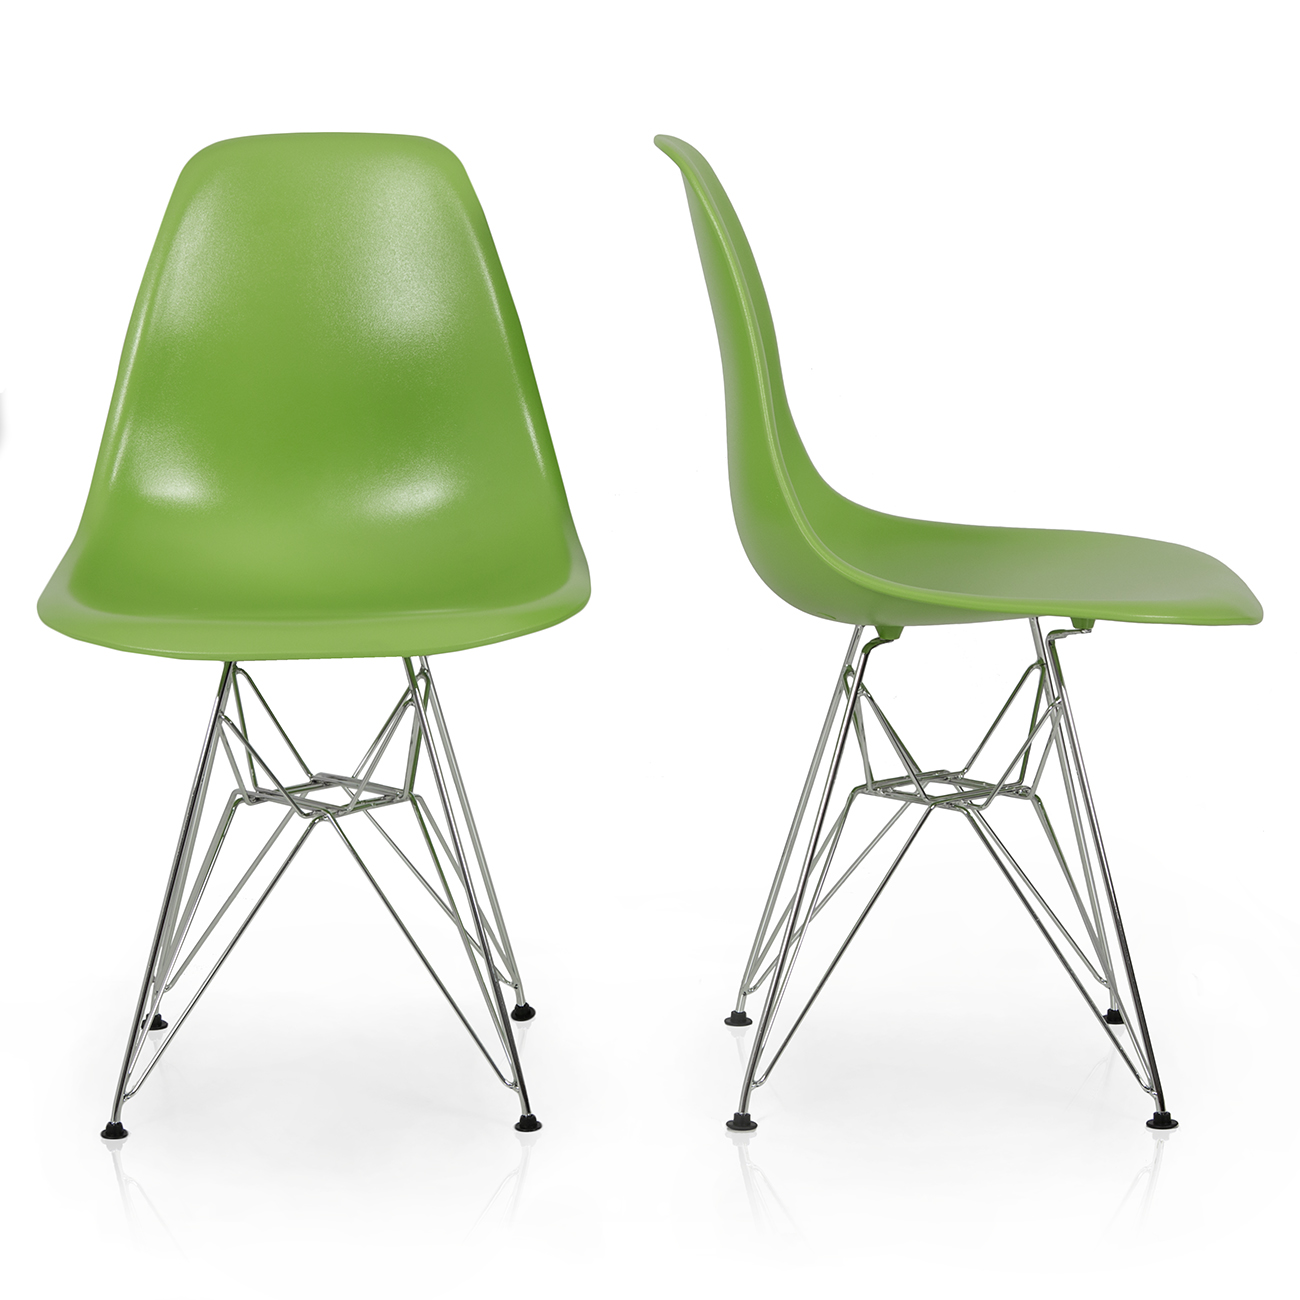 2x Style DSW Modern Eiffel Side Chair Molded ABS Plastic Chairs Wire